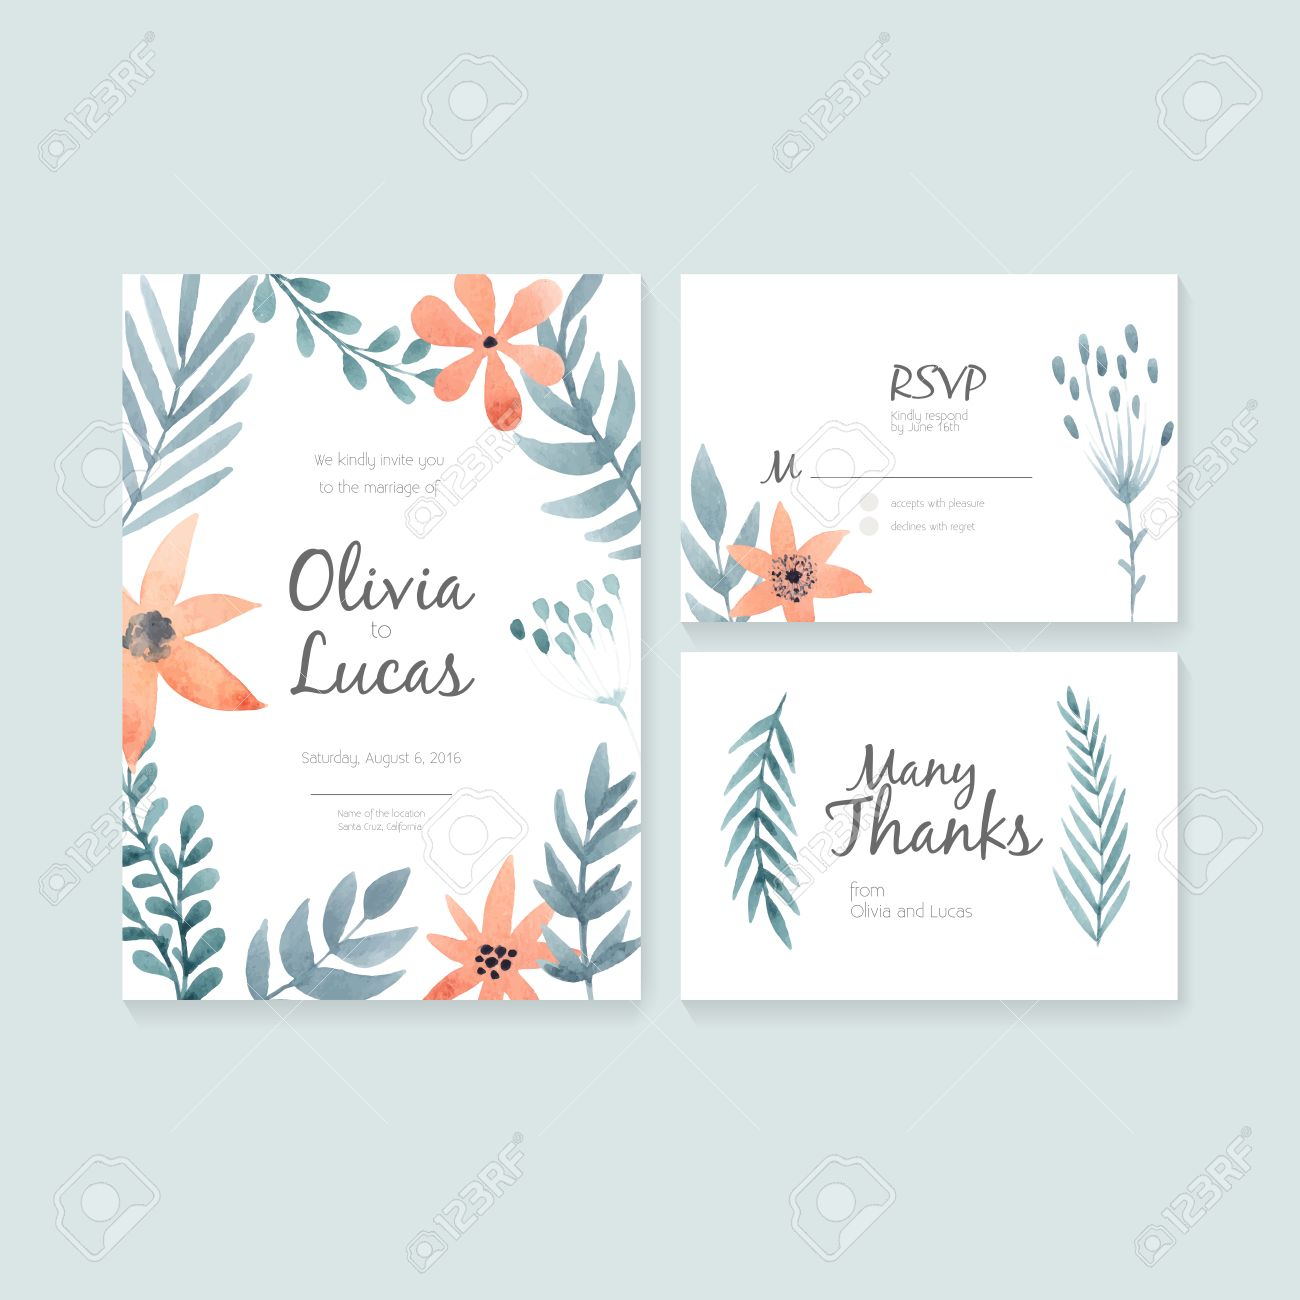 Unique Gentle Vector Wedding Cards Template With Watercolor - Card template free: postcard wedding invitations template